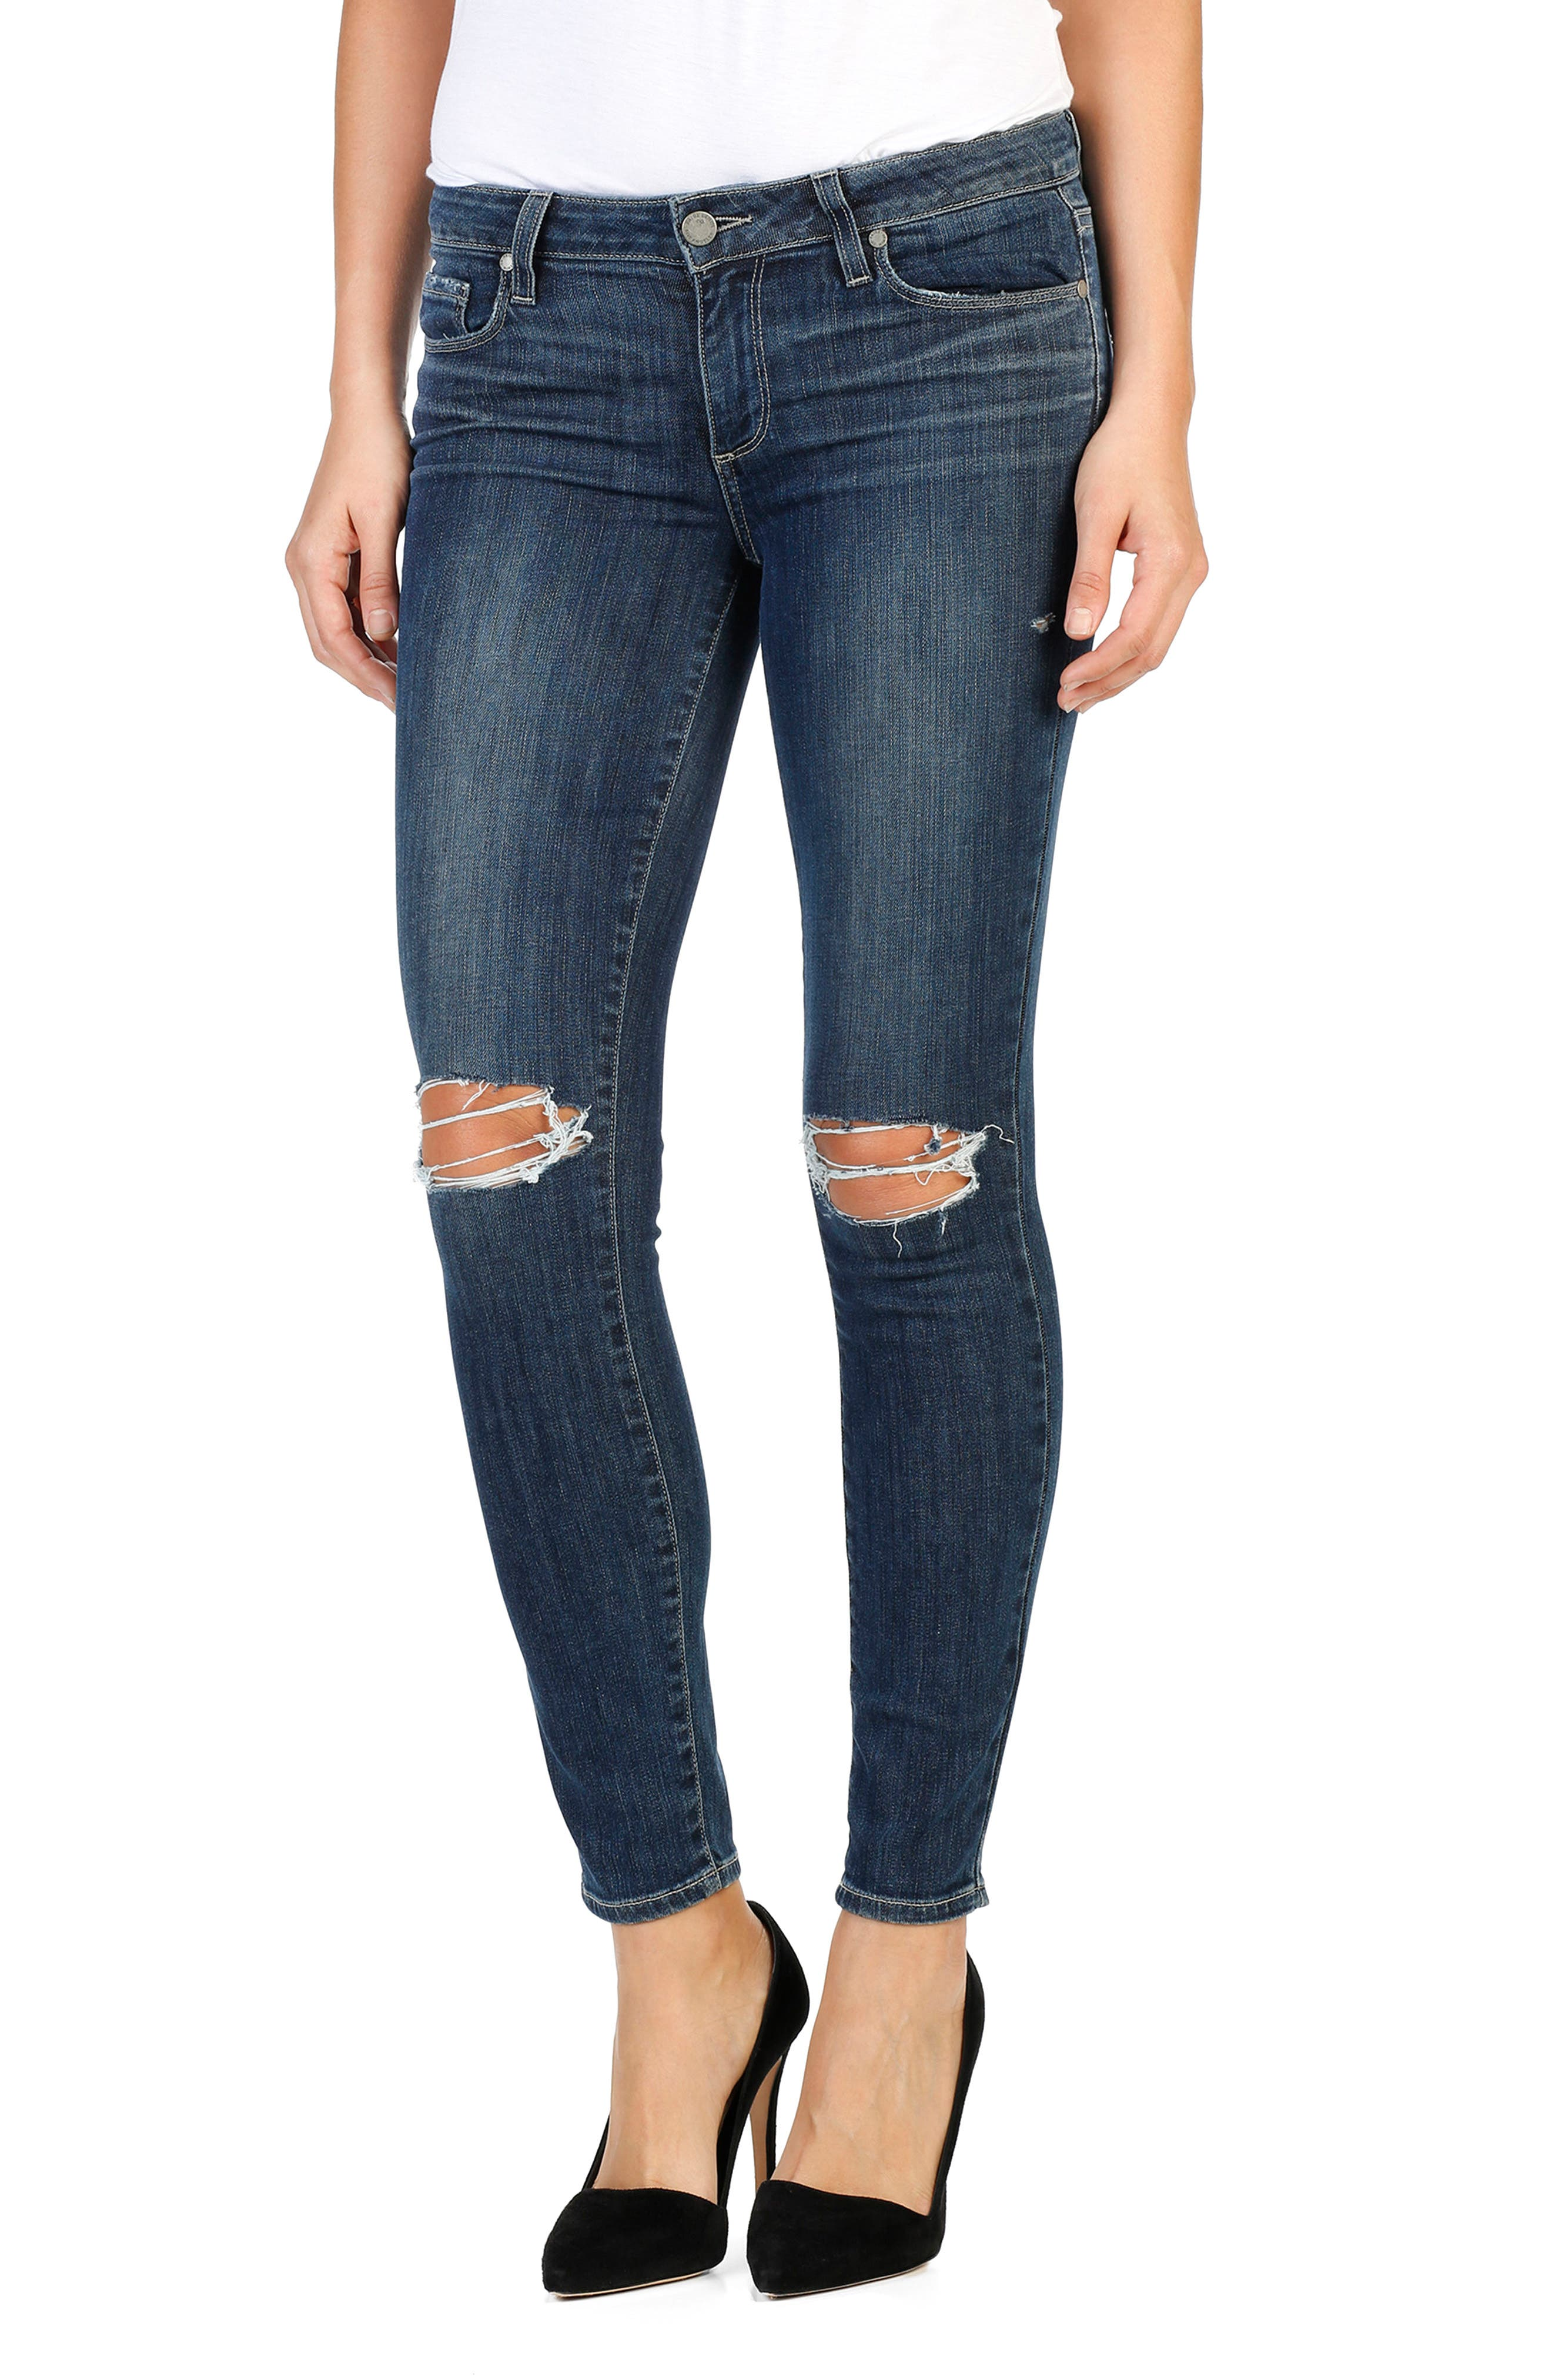 Legacy - Verdugo Ankle Skinny Jeans,                             Main thumbnail 1, color,                             400